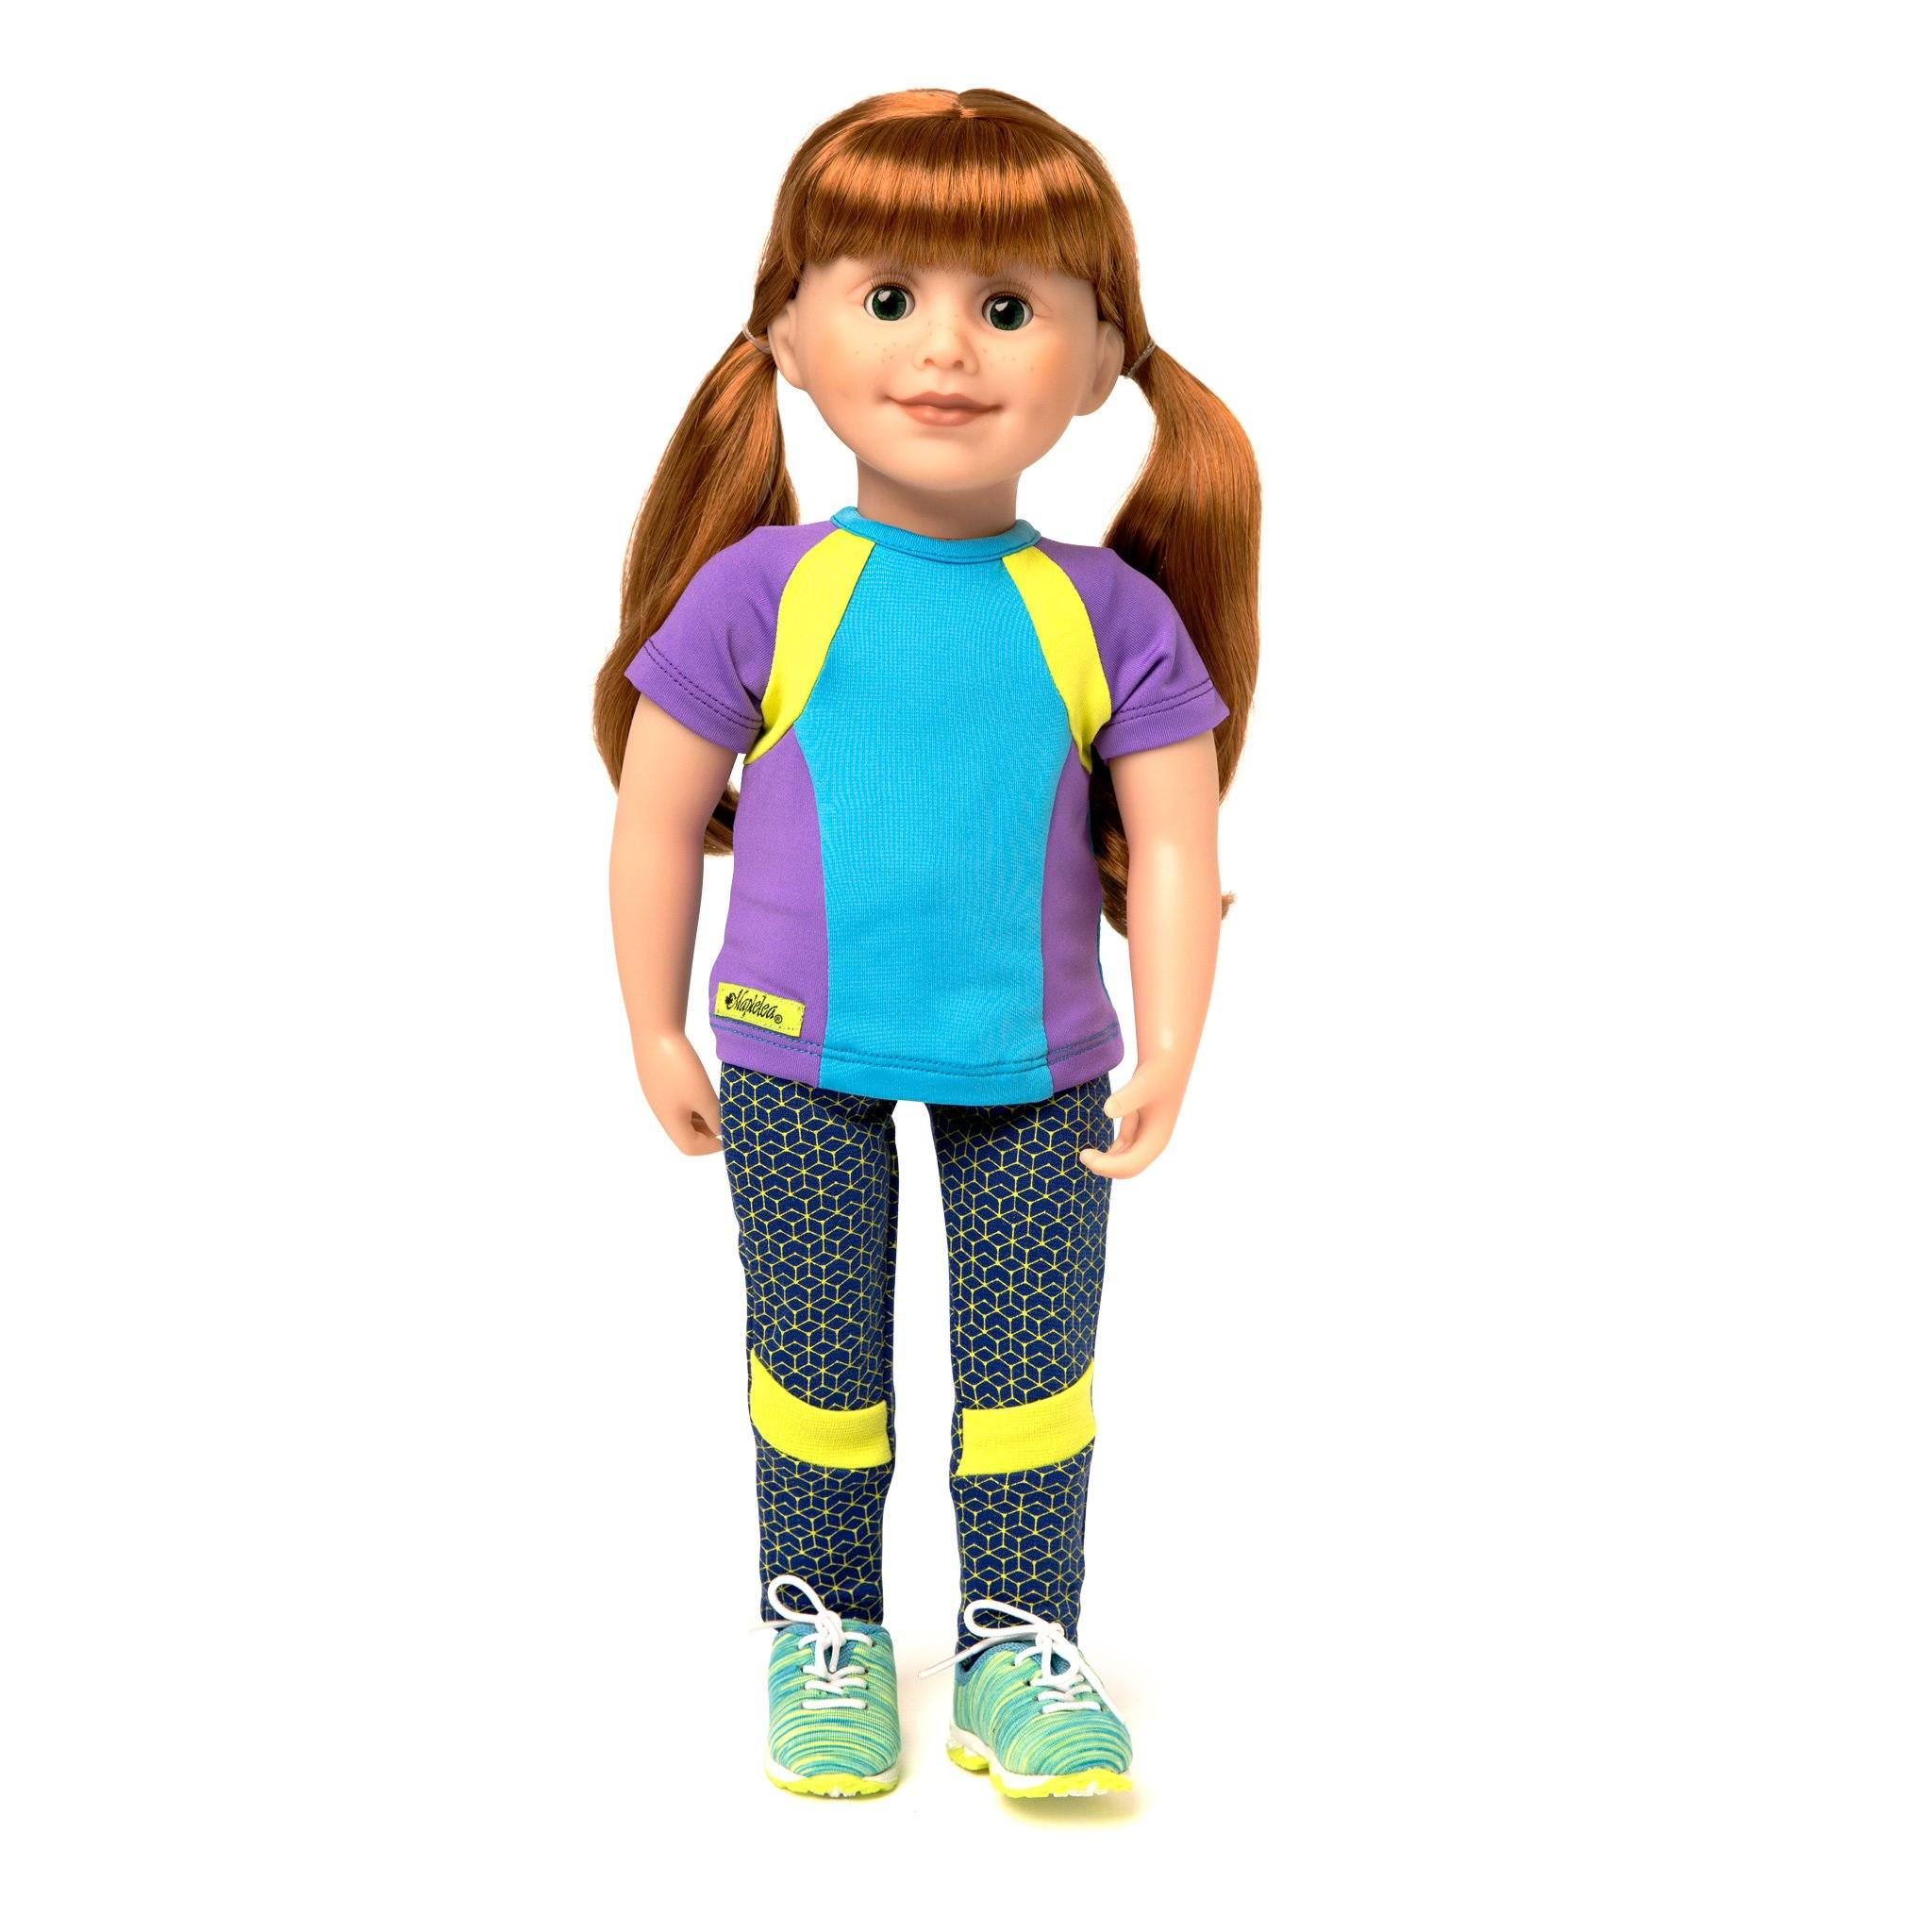 f747008dcffd Print leggings and color block t-shirt for 18 inch dolls